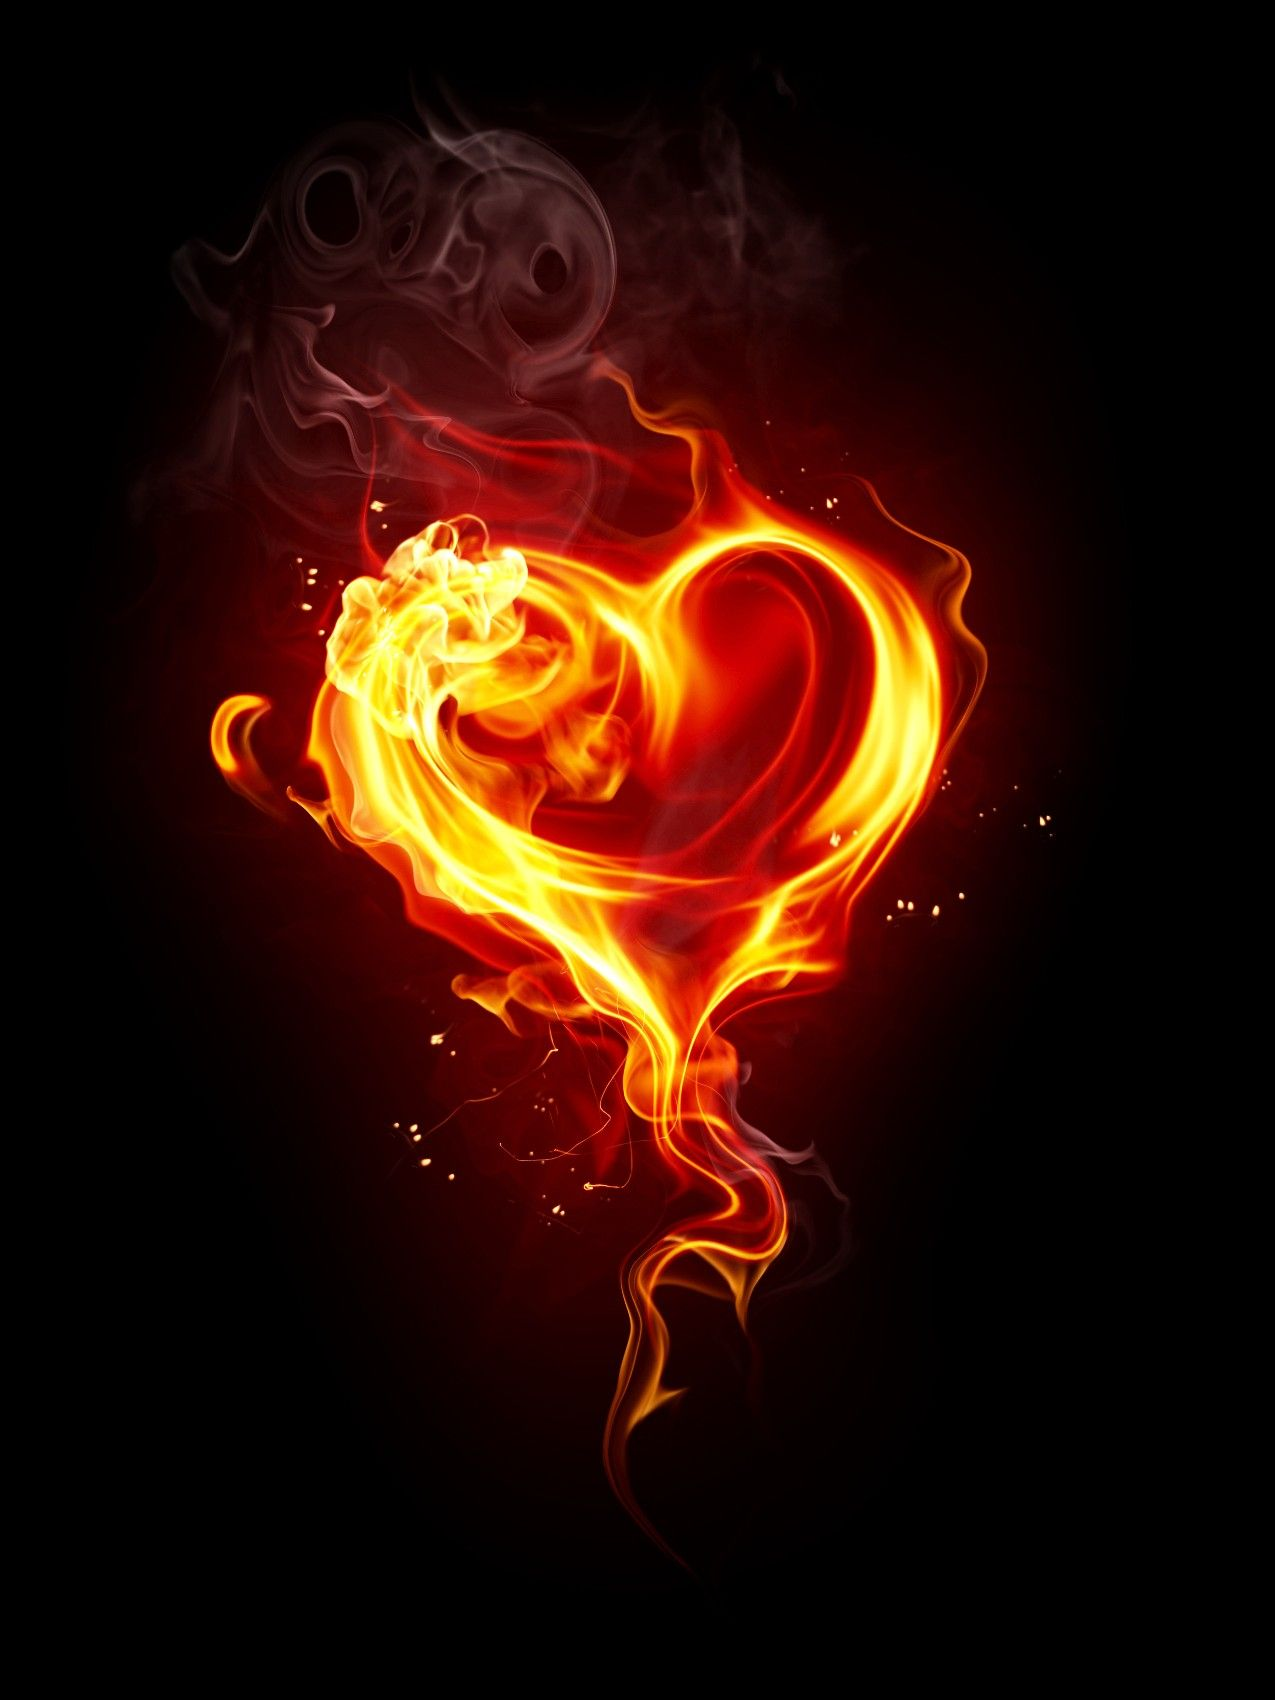 Pin By Binyamin On Png Fire Heart Heart Wallpaper Love Background Images